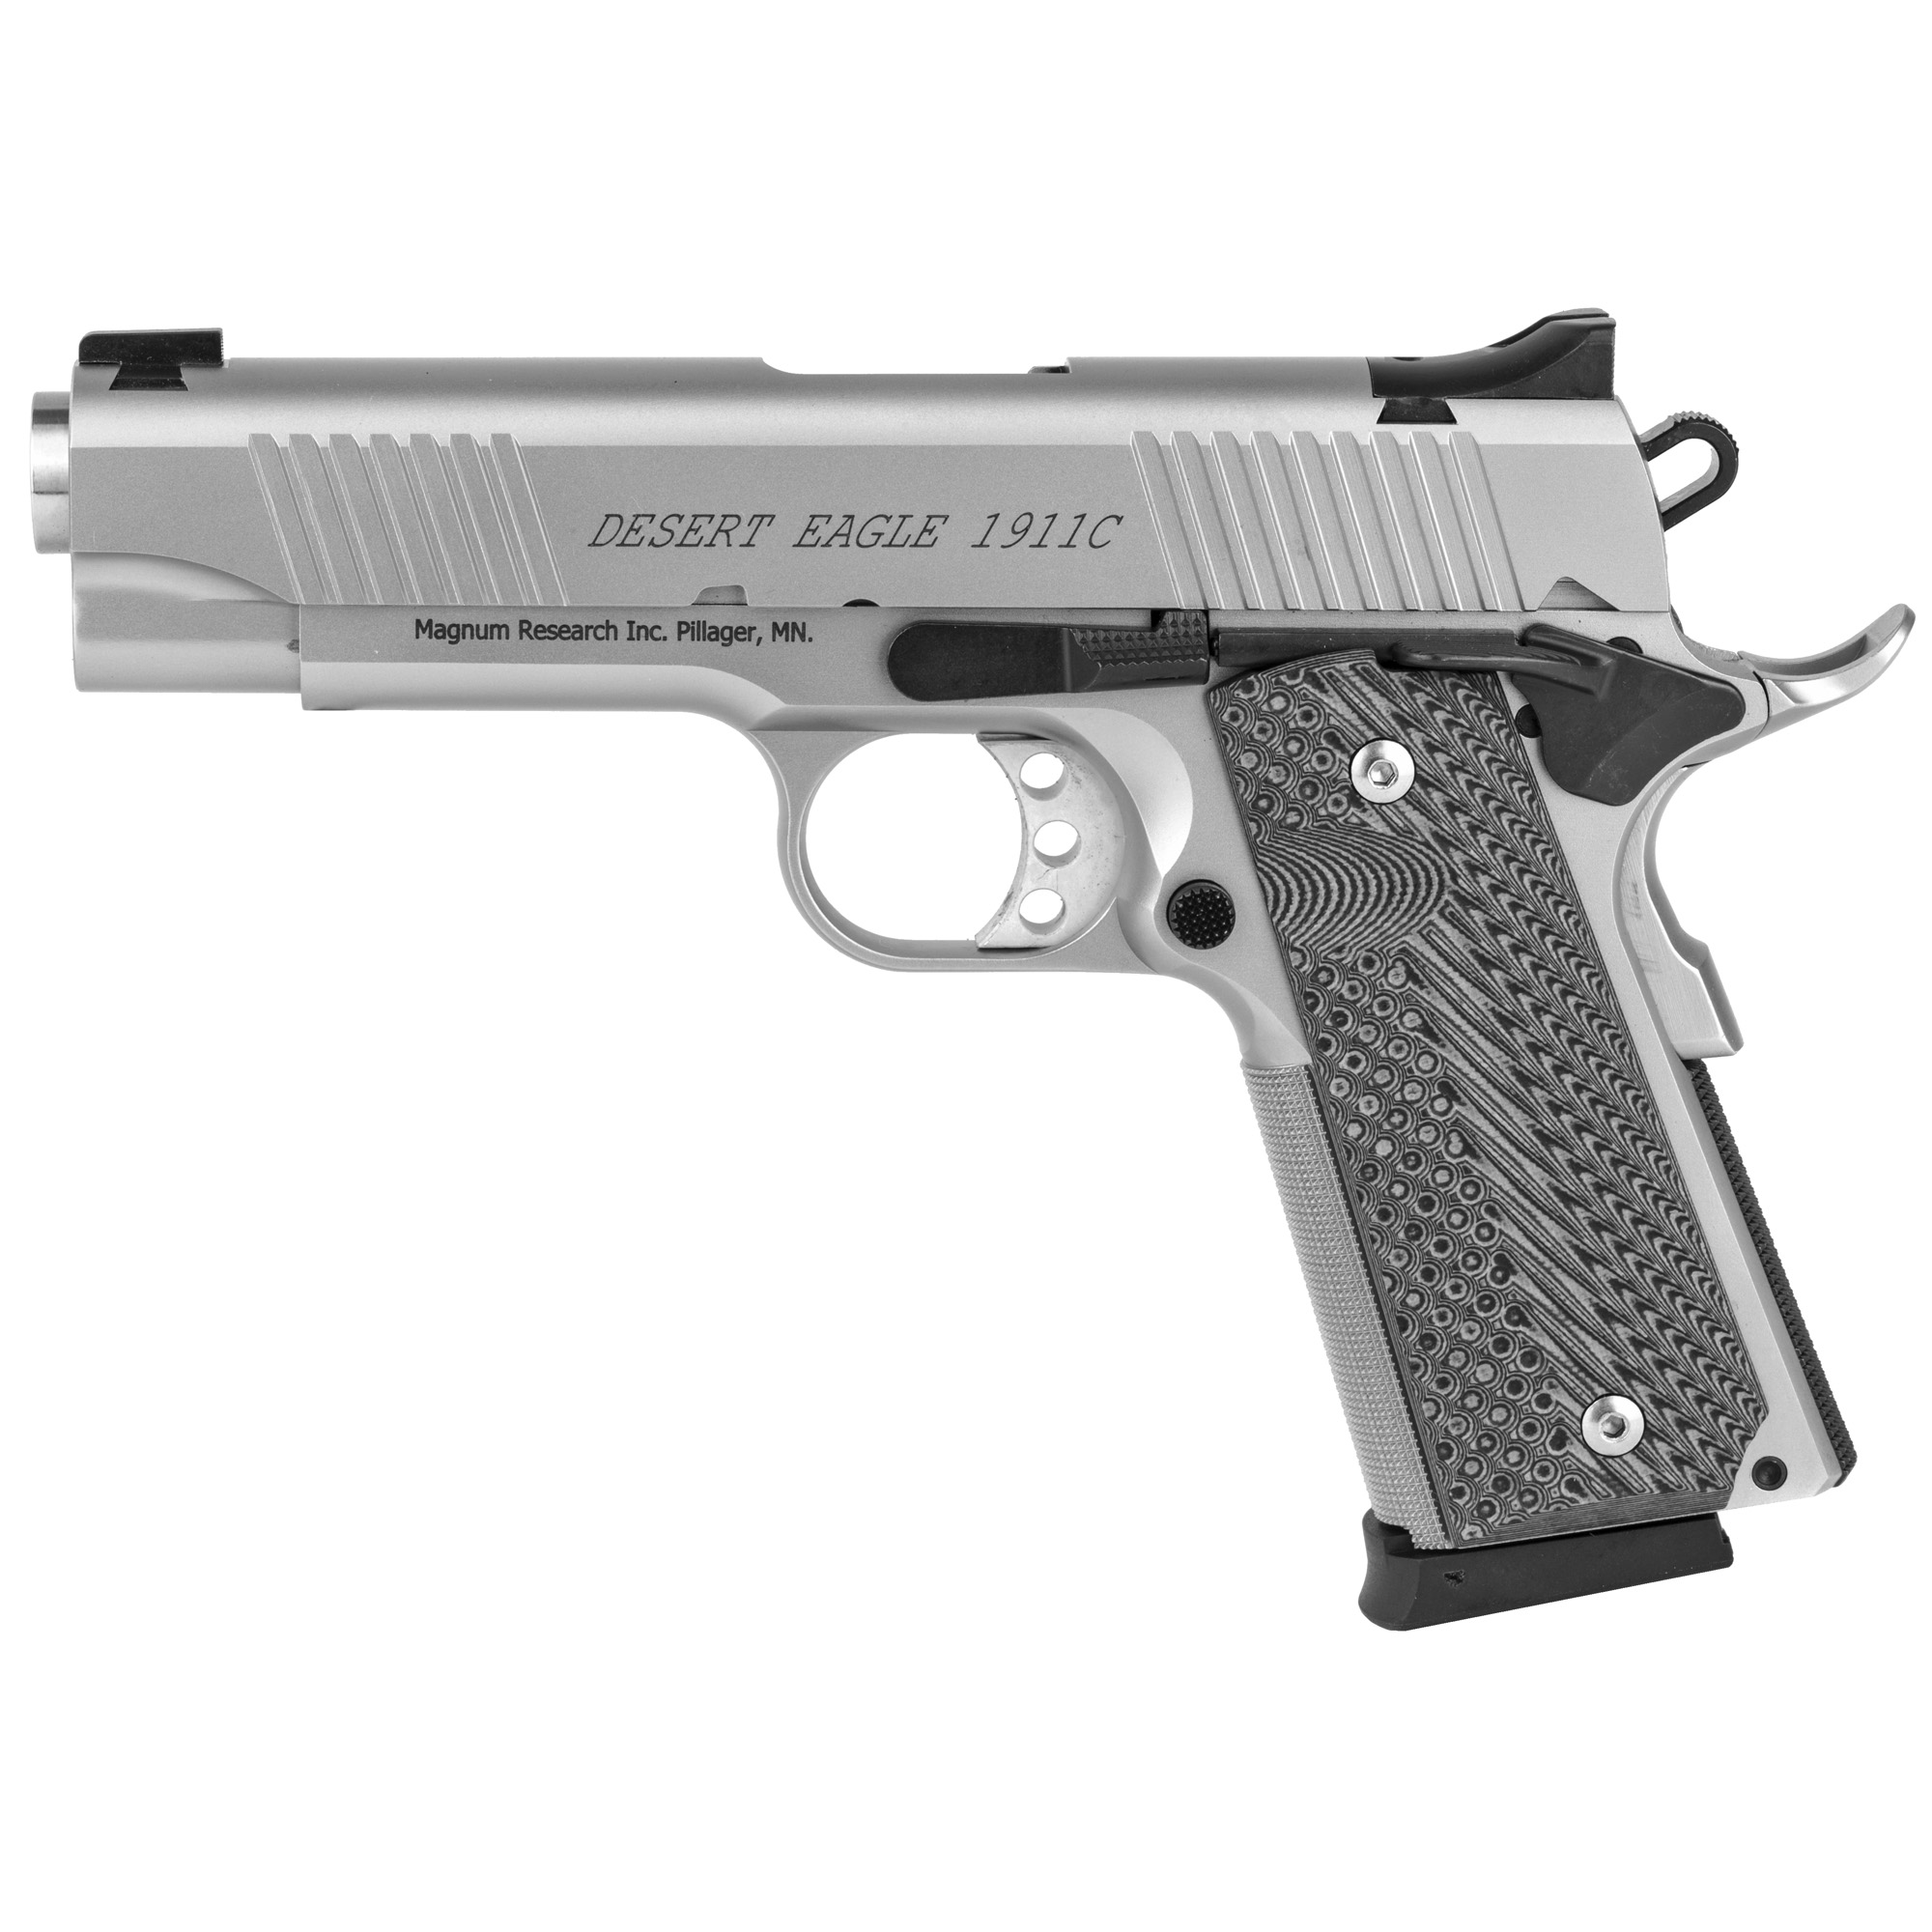 """All Desert Eagle 1911 series 70 slide and frame rails are machined to aerospace tolerances"""" delivering accuracy that will match any custom gun. Offered in both Chrome Moly and Stainless and feature stainless match barrels"""" G-10 grips"""" light triggers with zero creep"""" and a stainless beavertail grip safety. The G (5"""" barrel) and C (4.33"""" barrel) models are equipped with fixed combat sights and the Undercover """"U"""" (3"""" barrel) models come with an adjustable rear sight. Desert Eagle 1911s chambered in 45 ACP all have a traditional feed ramp machined into the frame"""" while all 9mm pistols have a ramped barrel with fully supported chamber. Only the 1911G models have a traditional barrel bushing in the slide. The 1911C and U models feature a bushingless slide and bull barrel. With the shorter slides of the C and U models"""" the bushingless slide allows for a longer recoil spring and ensures reliable function. Includes two 8-round magazines."""